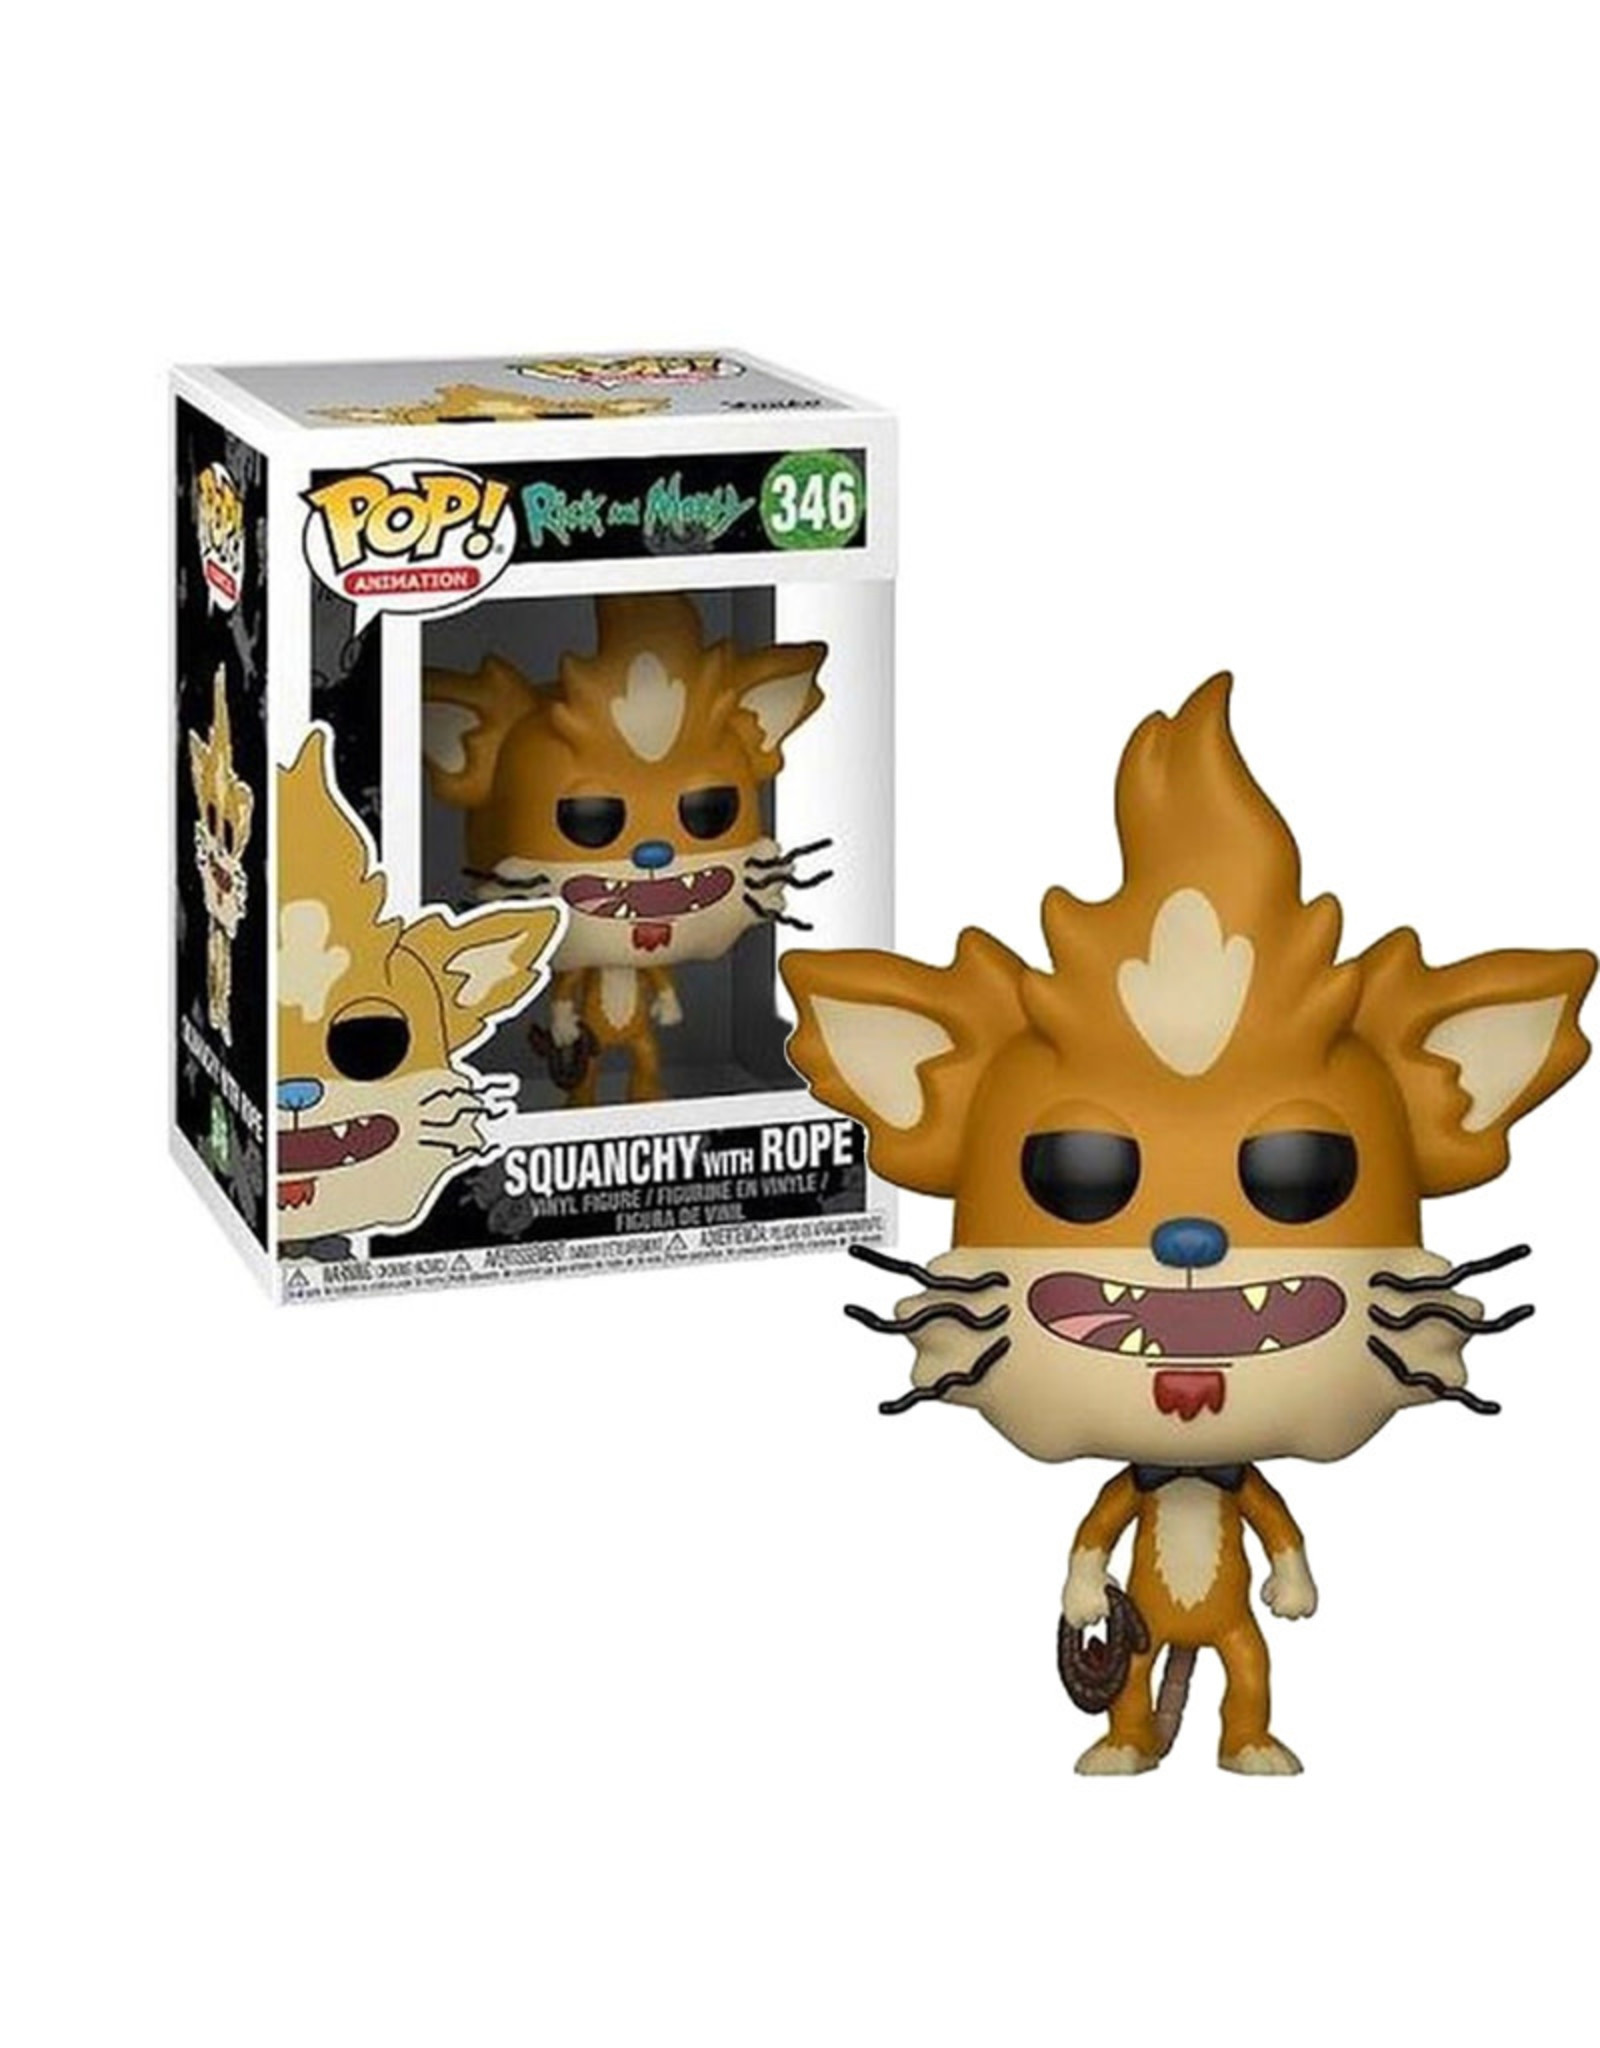 Squanchy With Rope 346 ( Funko Pop ) Rick and Morty